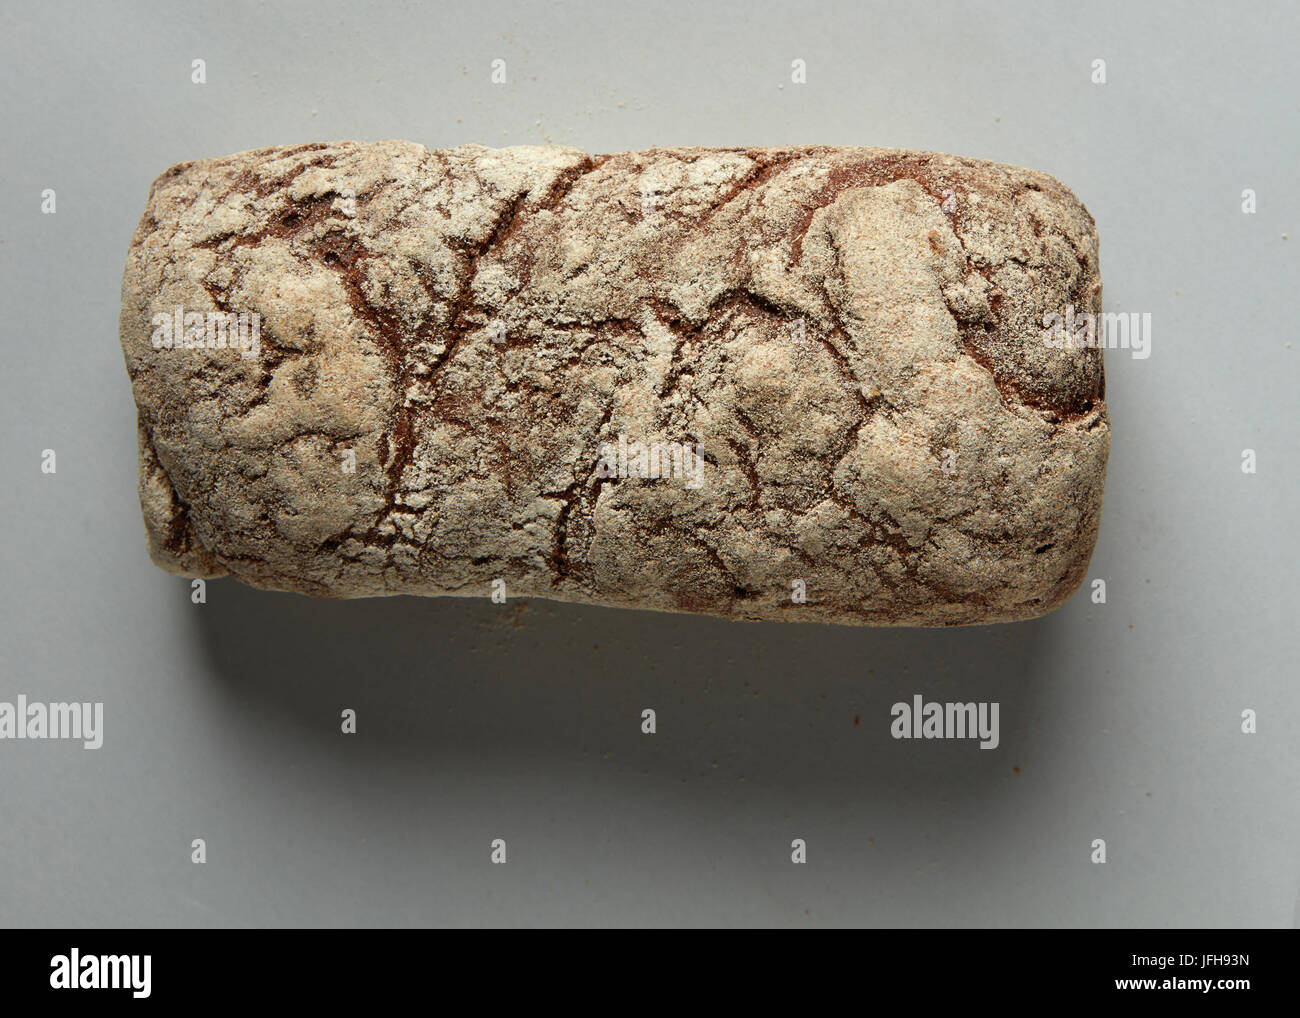 Rustic bread loaf Stock Photo